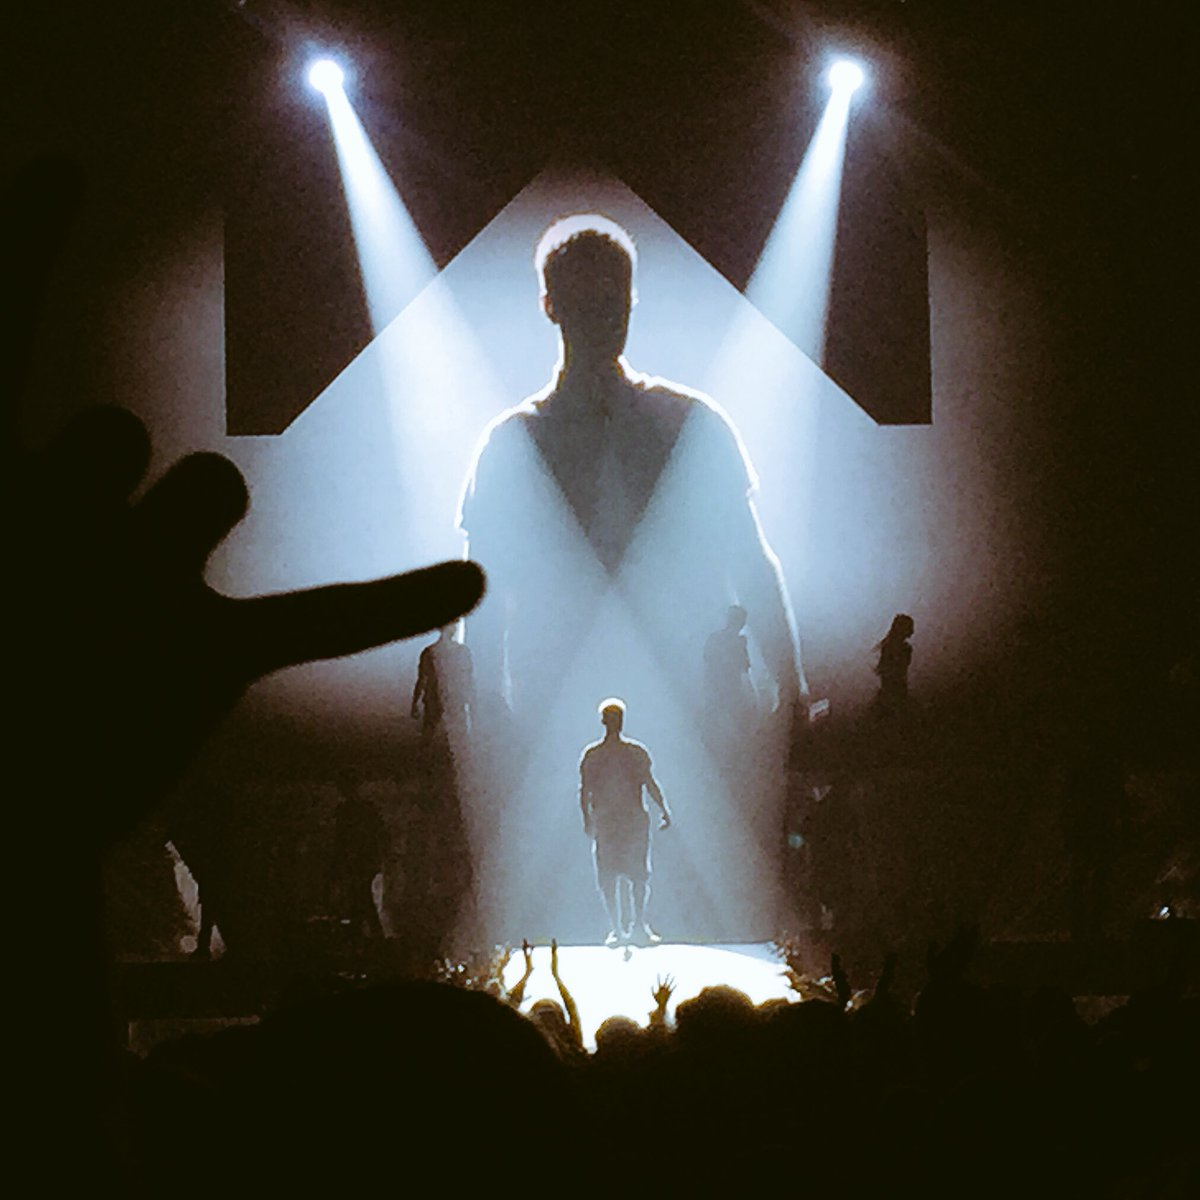 Tonight was one of those nights you never want to end. Thanks @justinbieber. Good night all